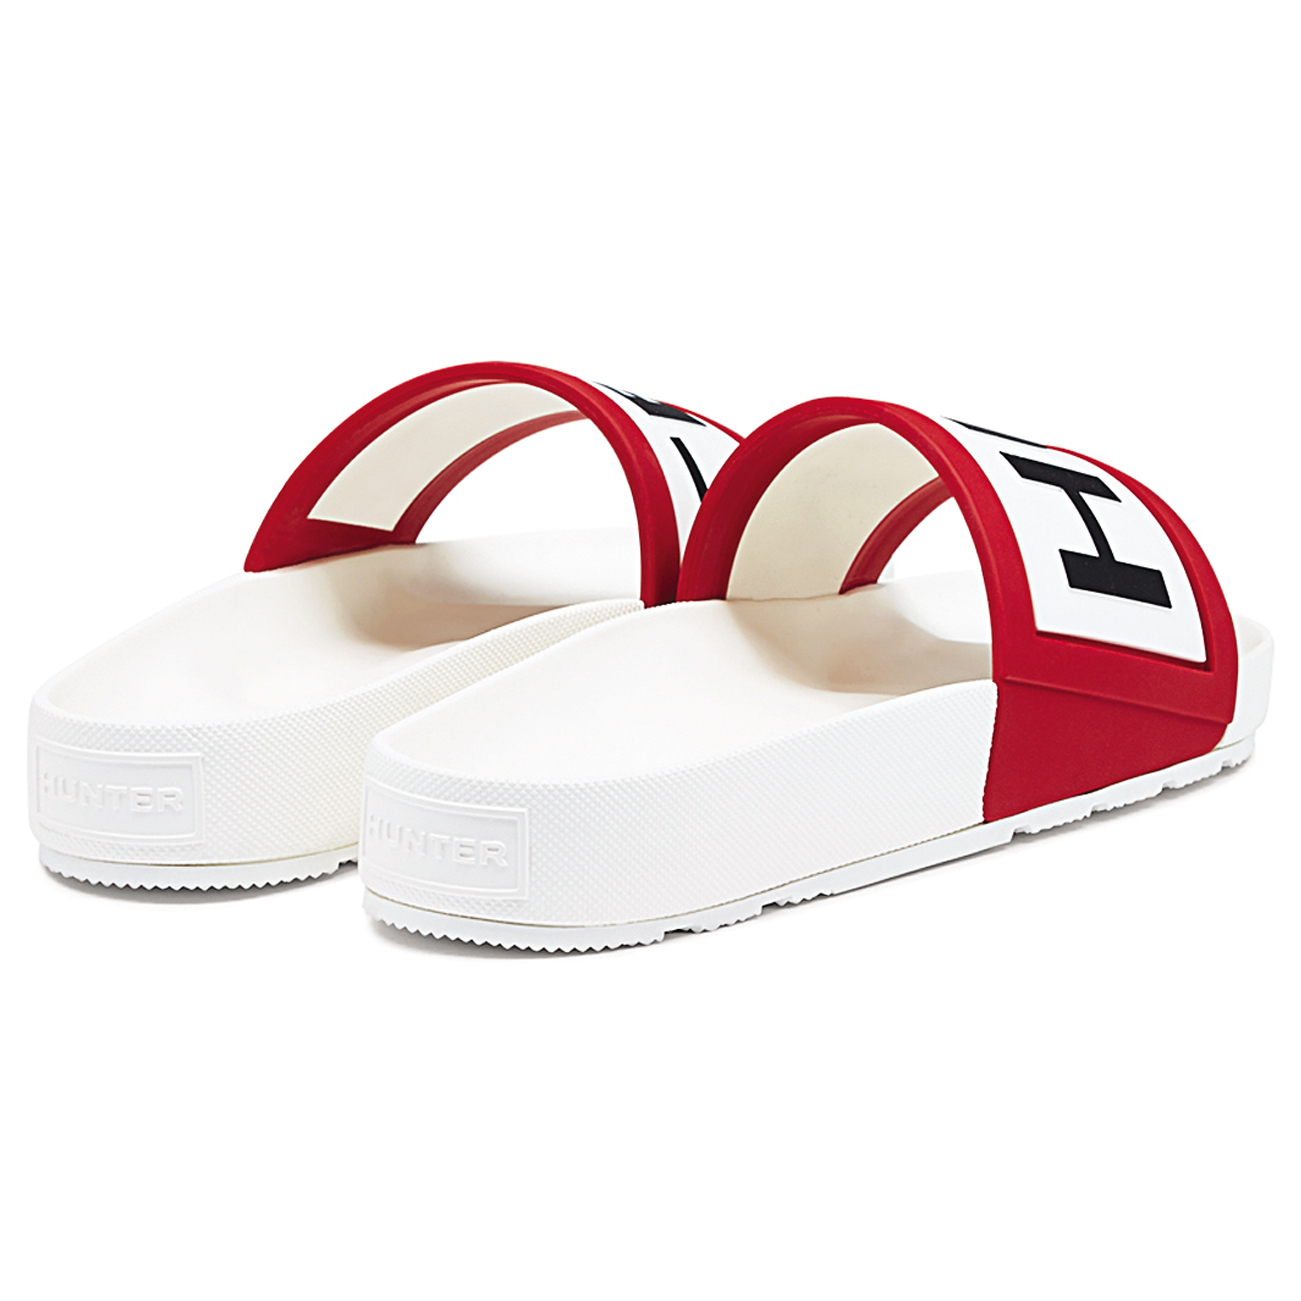 Ladies-Hunter-Slides-Beach-Pool-Shoes-Holiday-Open-